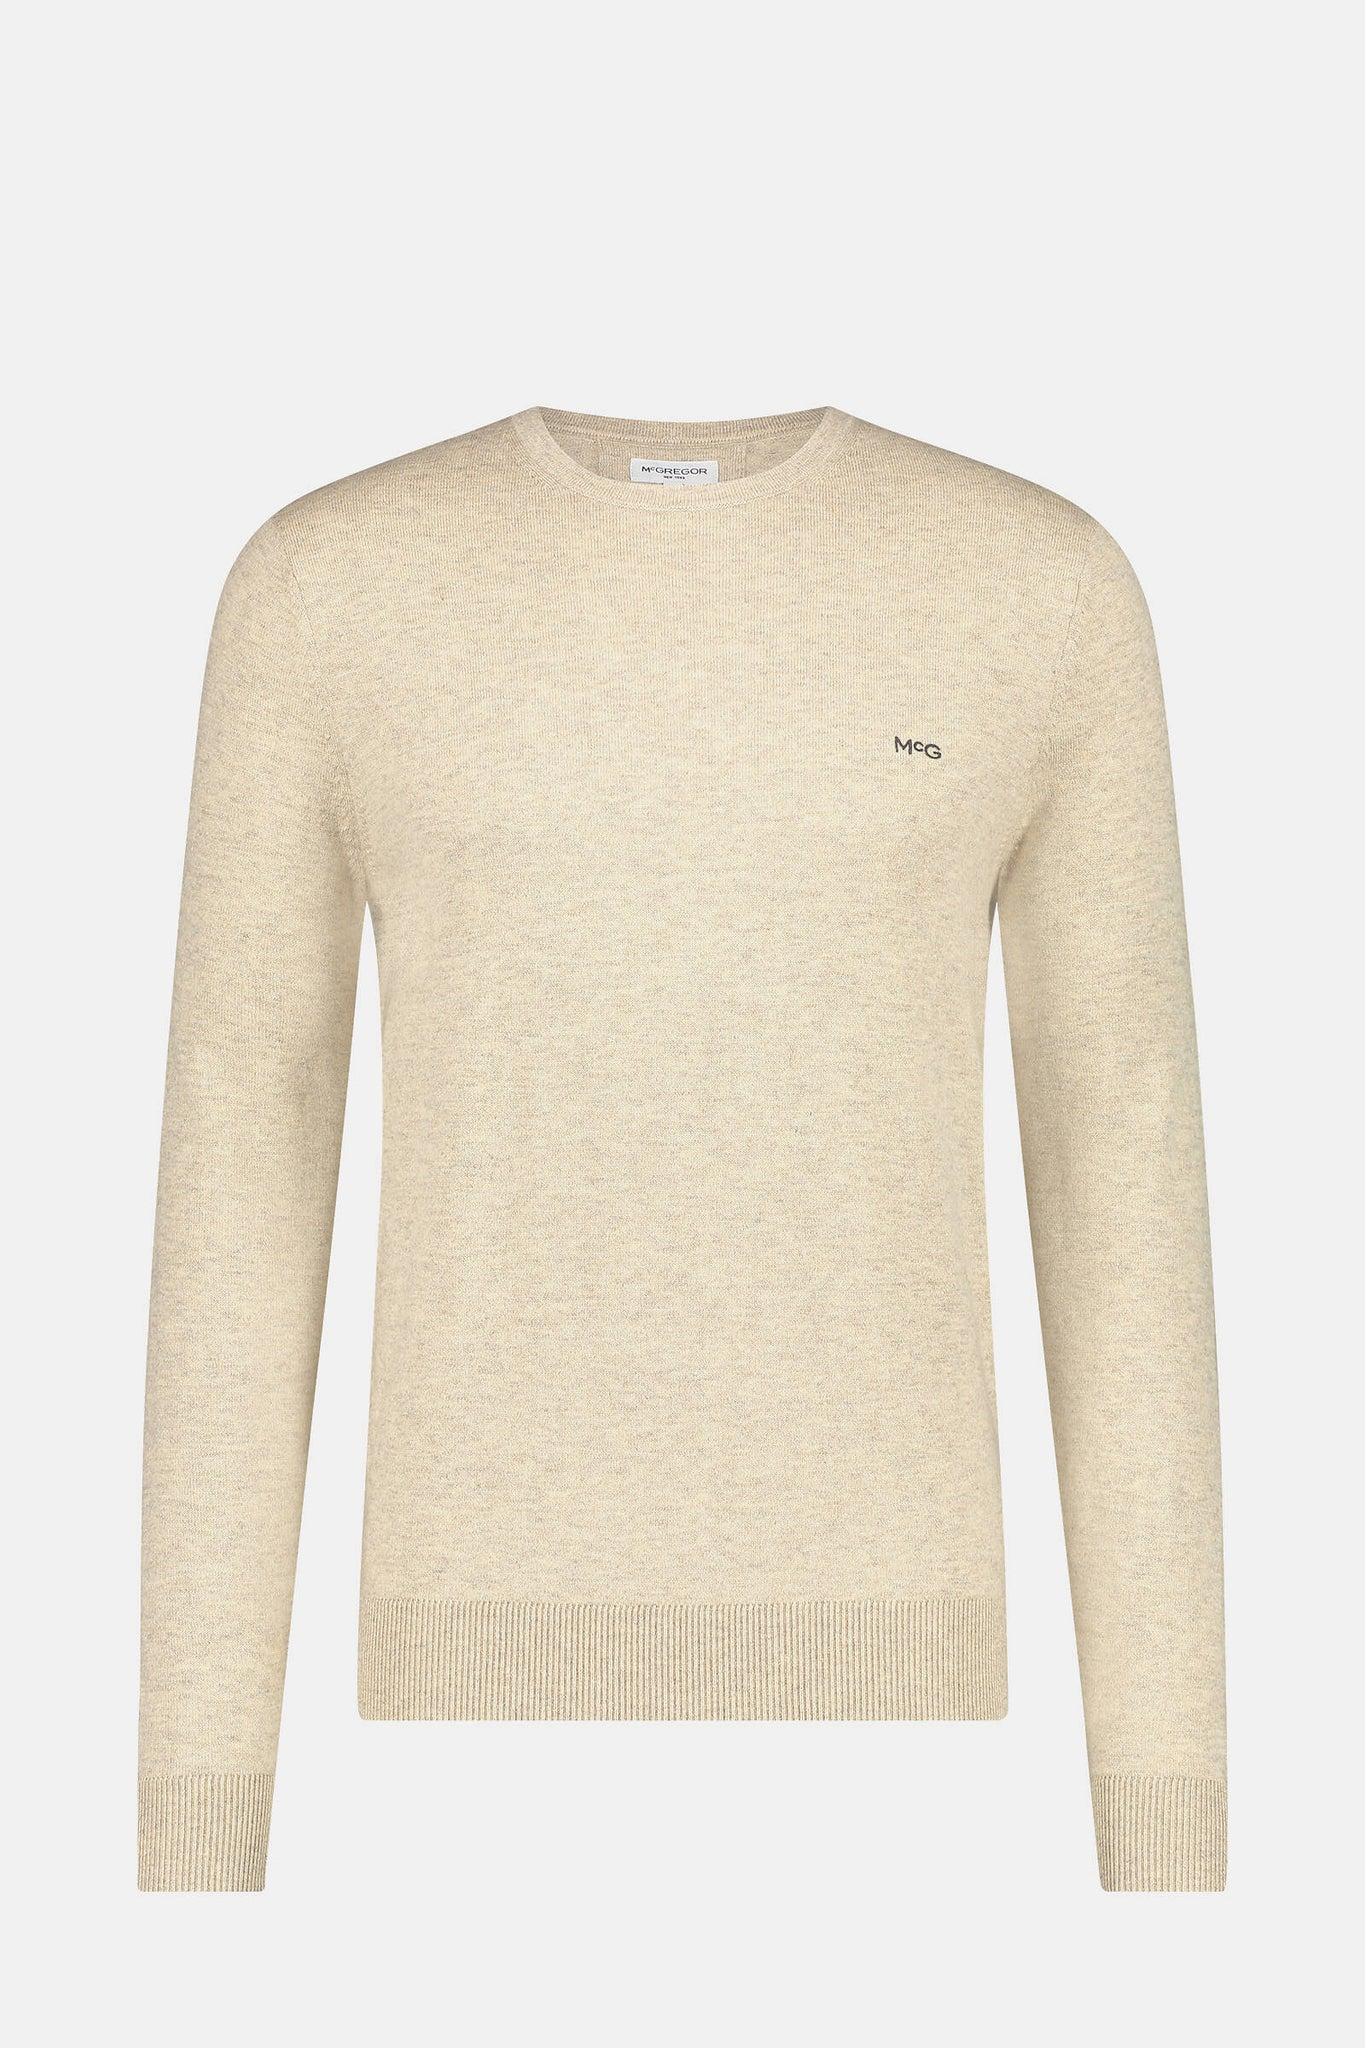 Essential crew neck sweater in wool blend